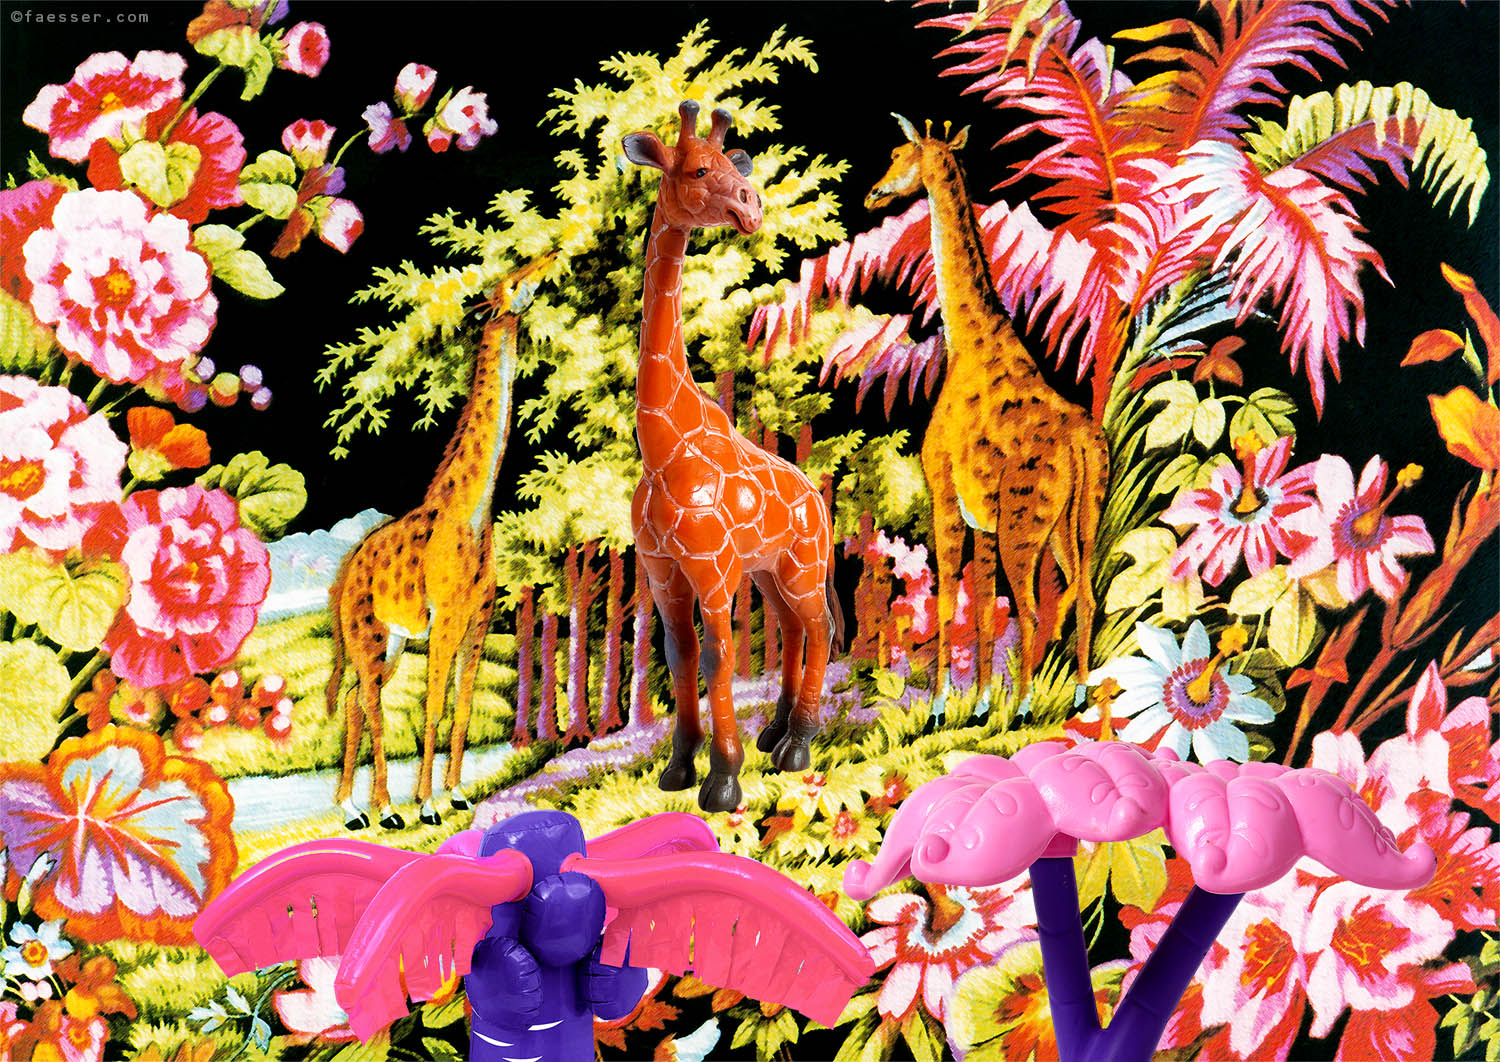 Digital overpainted Gobelin tapestry with three giraffes; artist Roland Faesser, sculptor and painter 2018